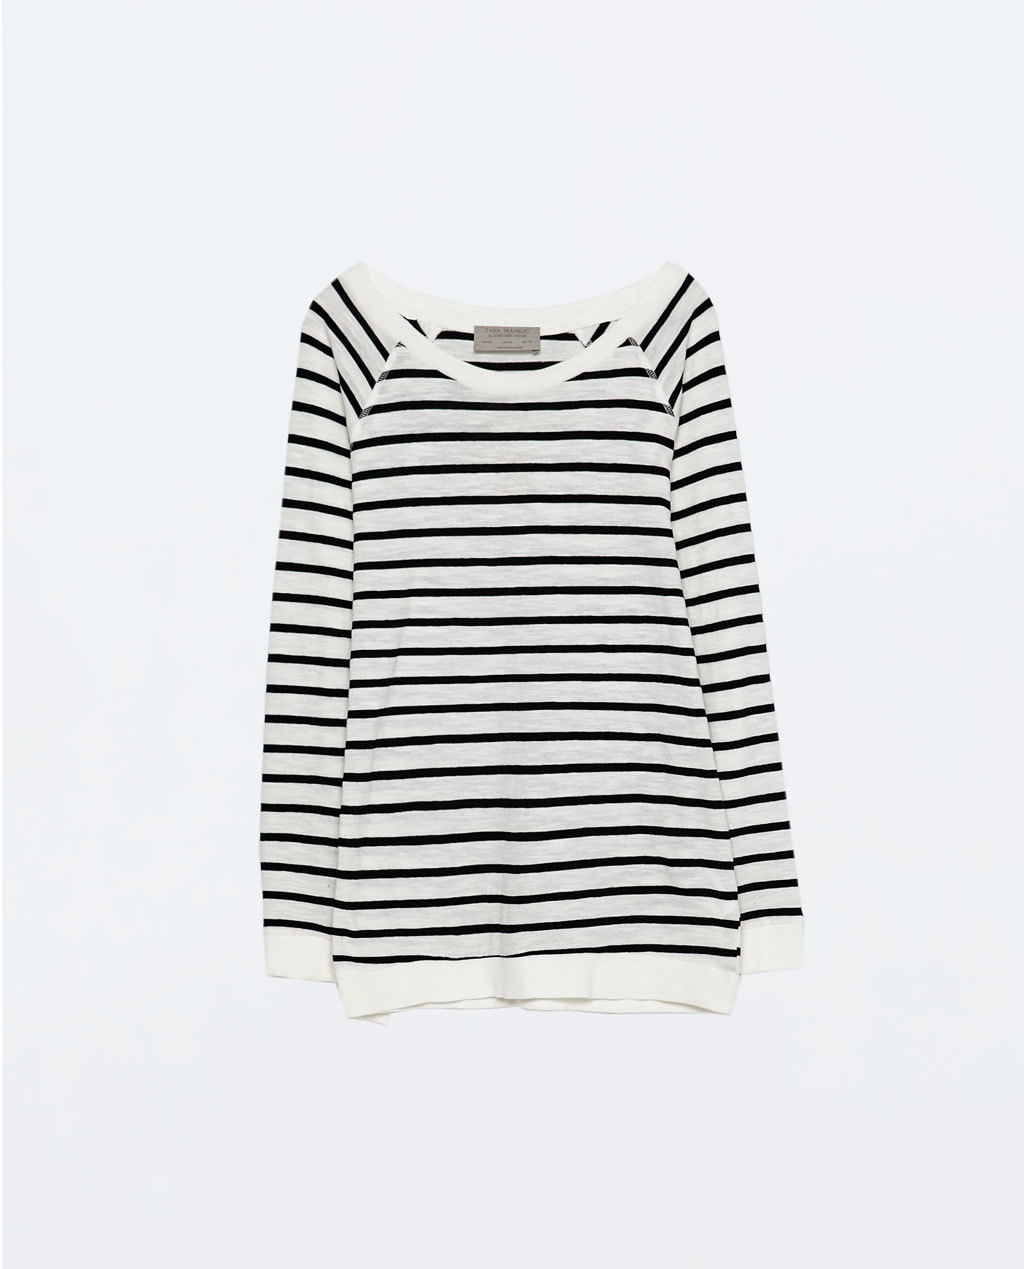 Raglan Sleeve T Shirt - sleeve style: raglan; pattern: horizontal stripes; length: below the bottom; style: t-shirt; secondary colour: ivory/cream; predominant colour: black; occasions: casual, creative work; neckline: scoop; fibres: cotton - 100%; fit: loose; sleeve length: long sleeve; pattern type: fabric; texture group: jersey - stretchy/drapey; season: s/s 2015; pattern size: big & busy (top); wardrobe: basic